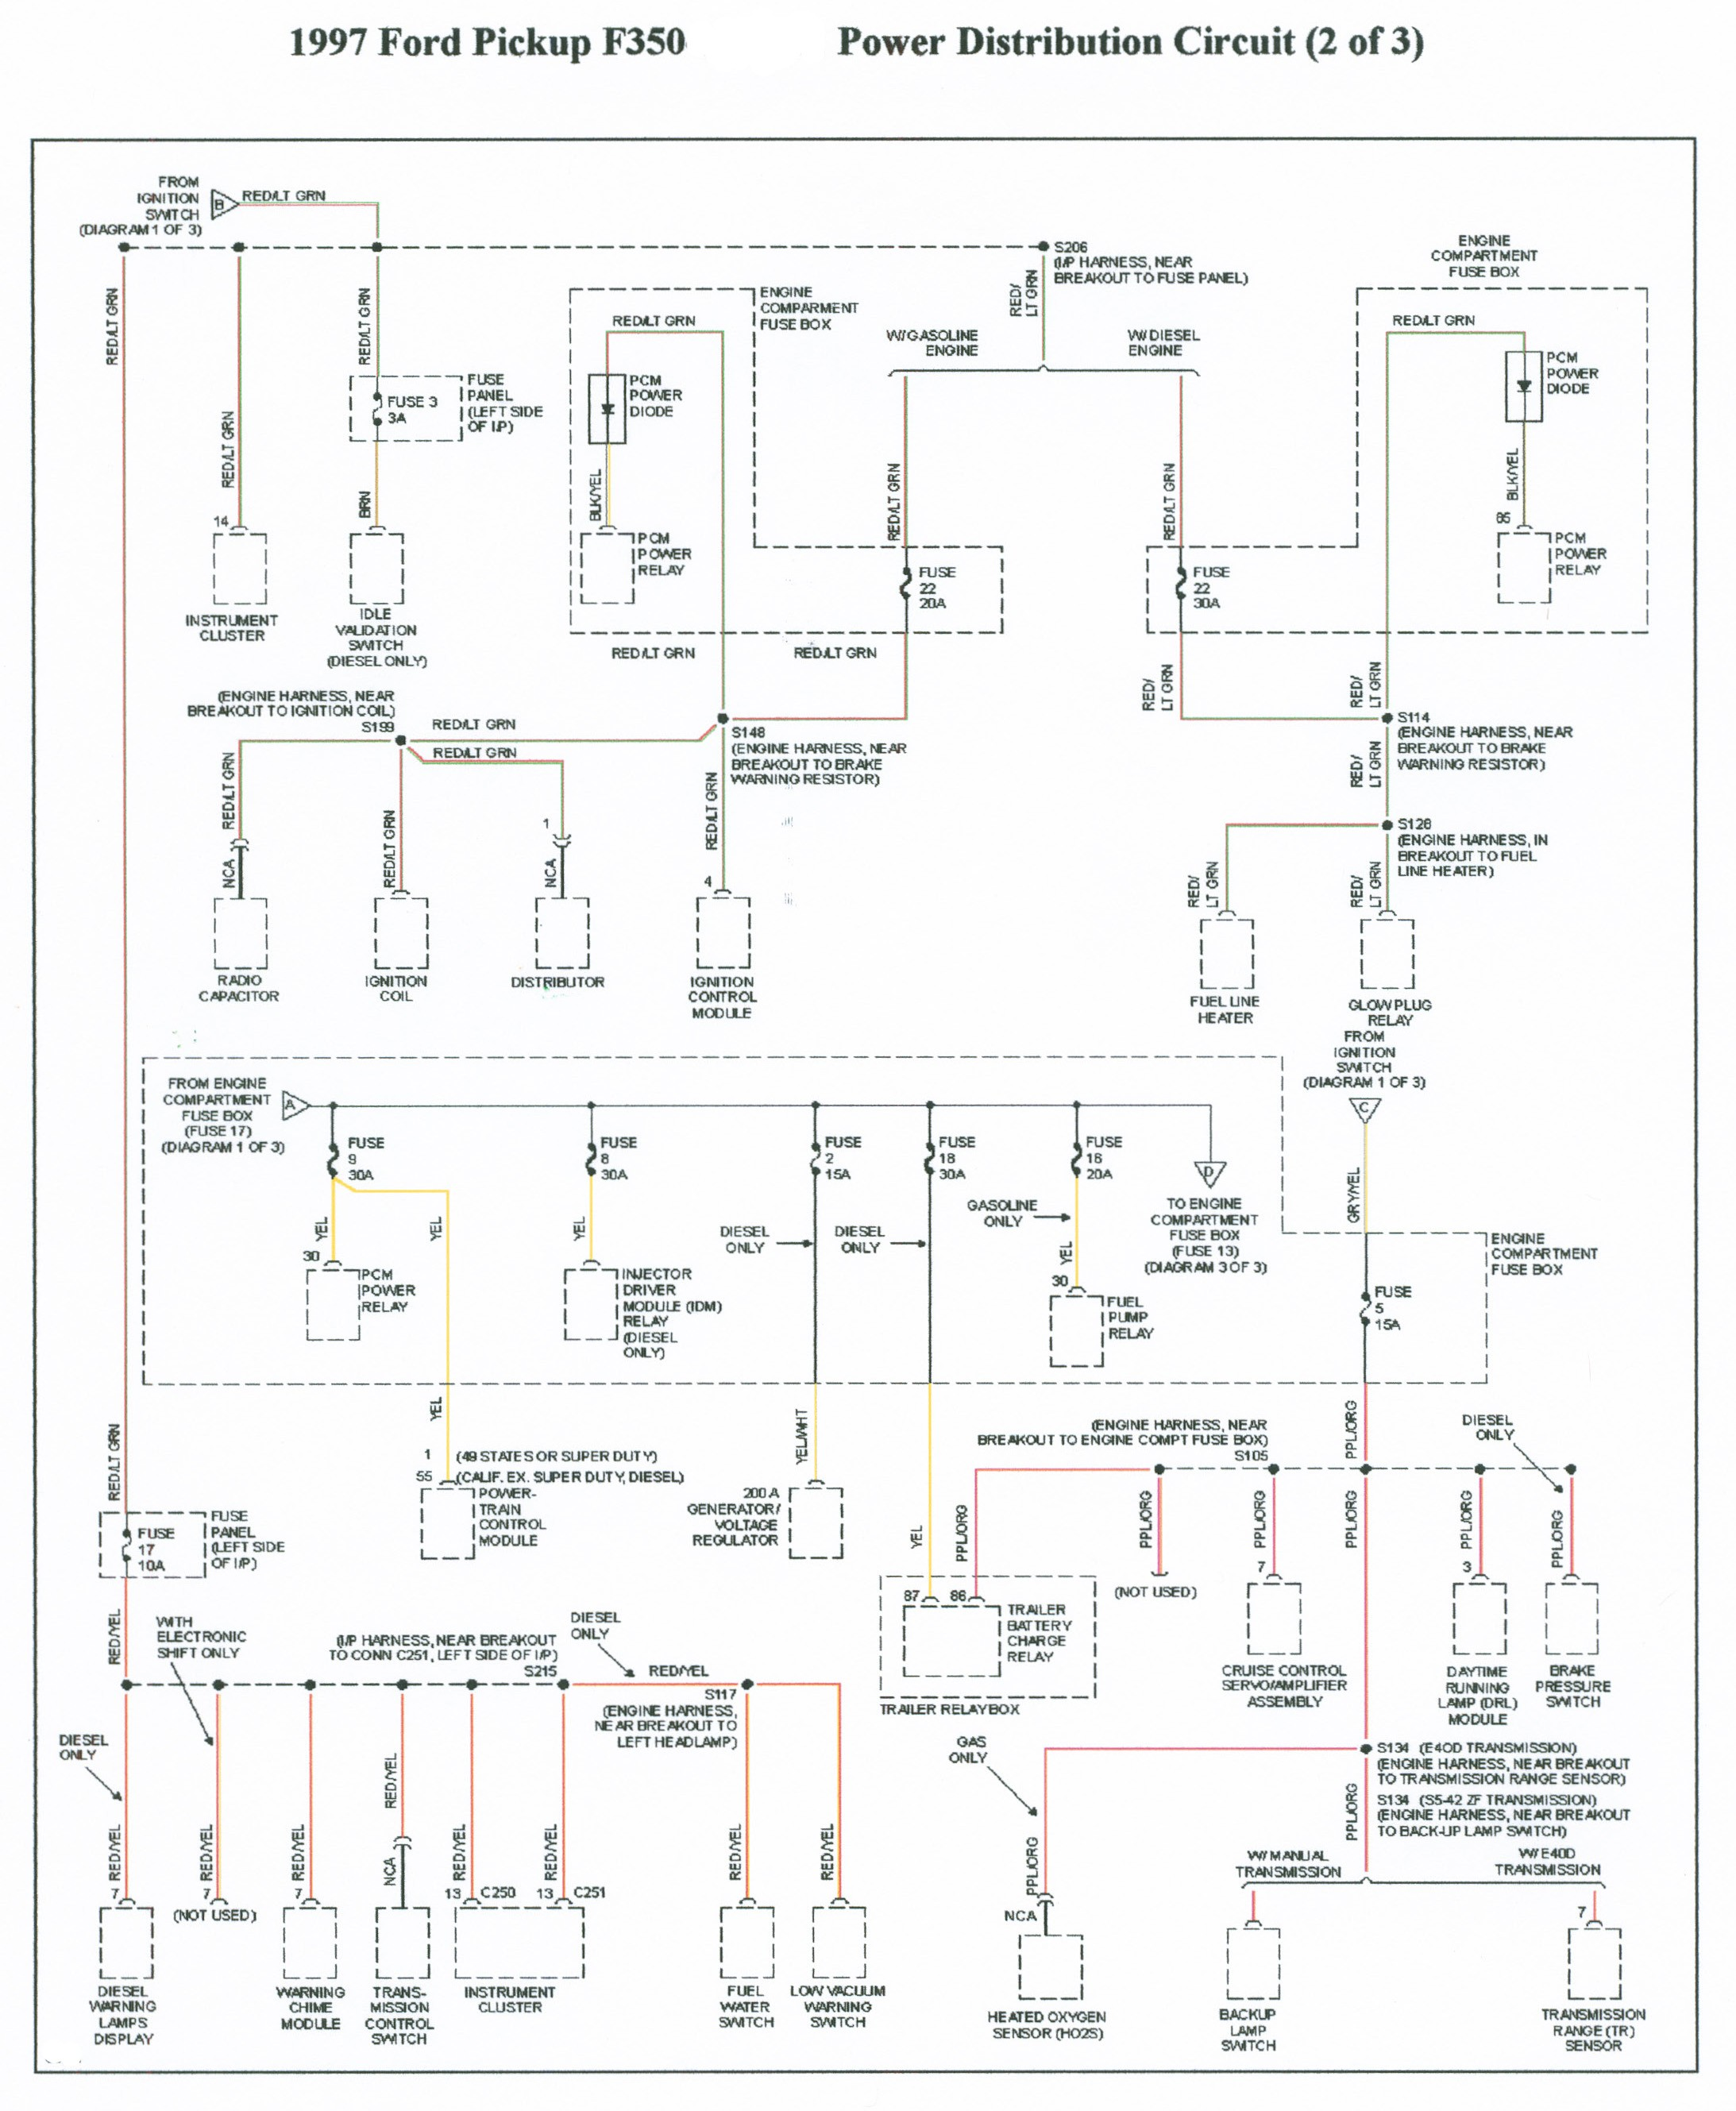 1994 E-350 Idi Relay Schematic No Wait to Start Light Of 1994 E-350 Idi Relay Schematic